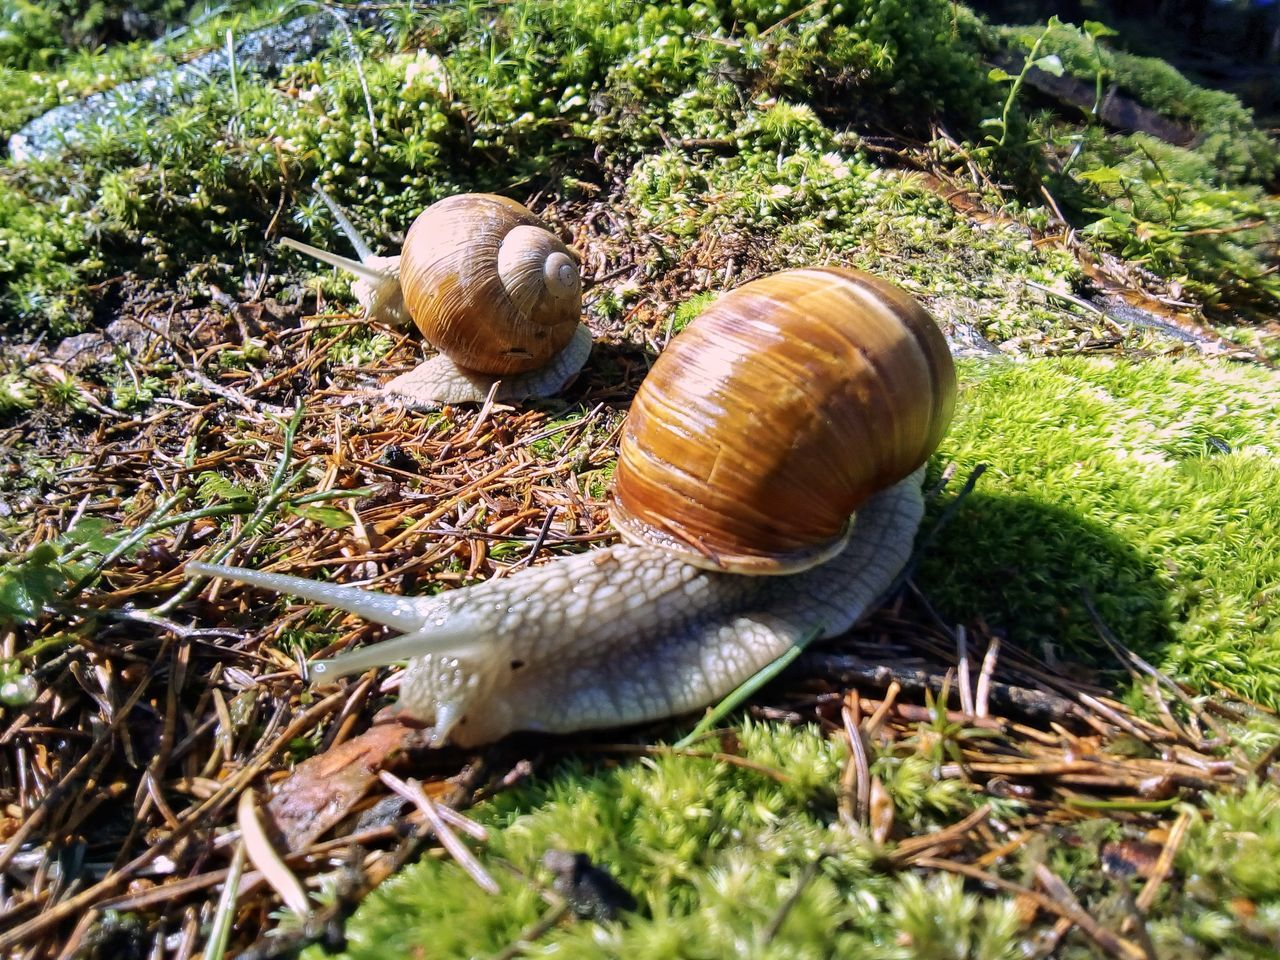 Snail Animal Shell Nature Outdoors Animal Themes Animals In The Wild Grass High Angle View Moss & Lichen Moss Summer Day Beauty In Nature Animal Wildlife Wildlife Animals In The Wild Nature Tranquility Wildlife & Nature